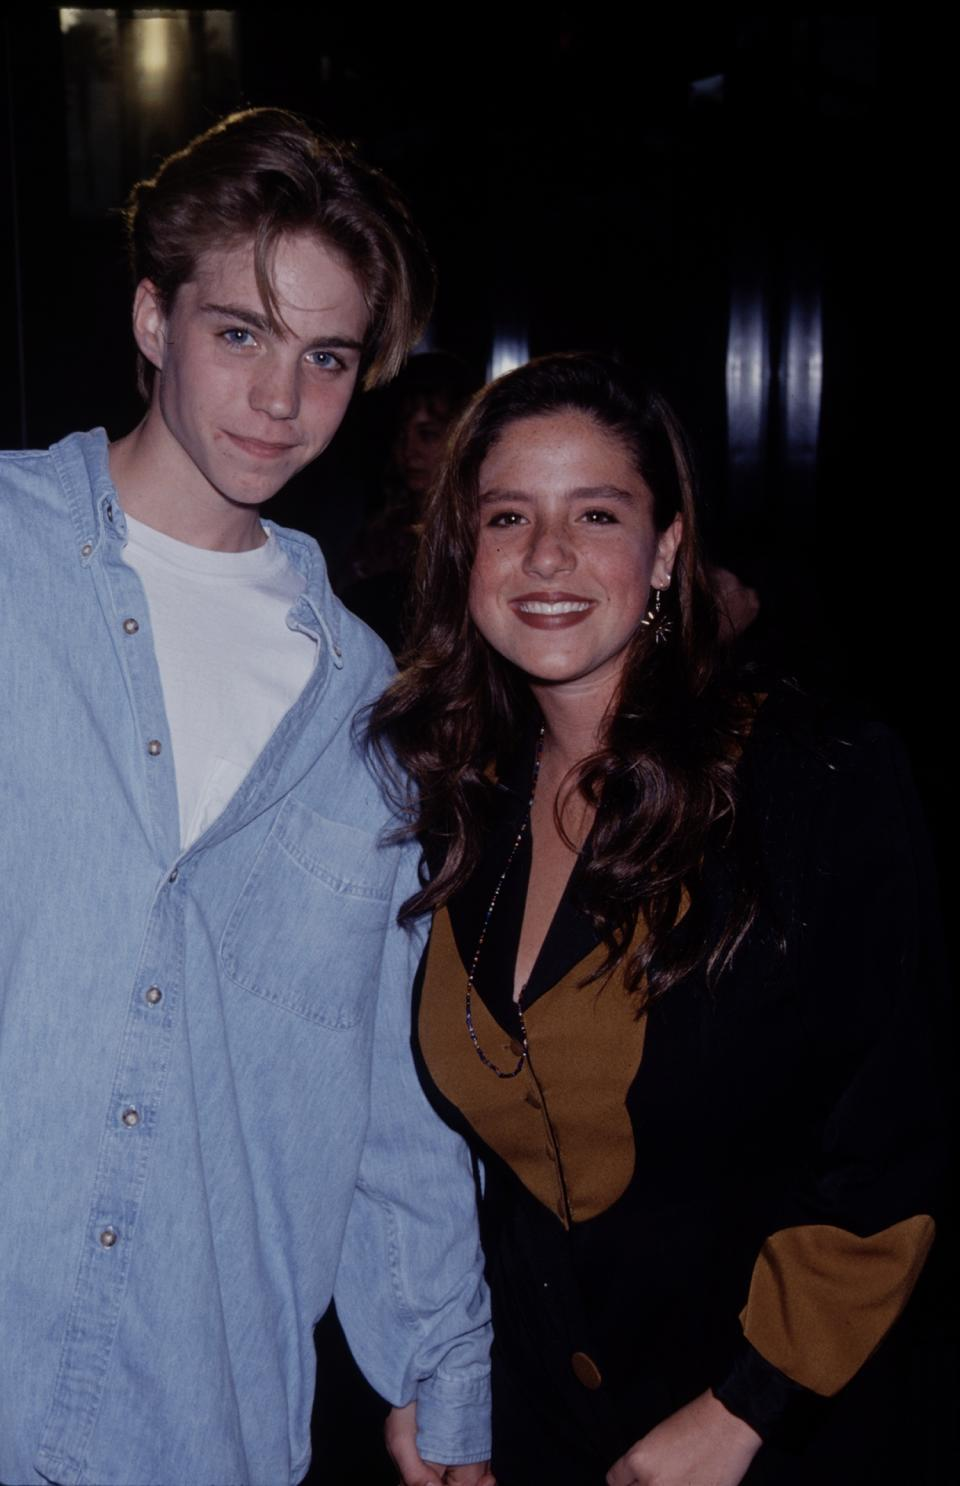 Soleil Moon Frye with Jonathan Brandis in 1990. (Photo: The LIFE Picture Collection via Getty Images)